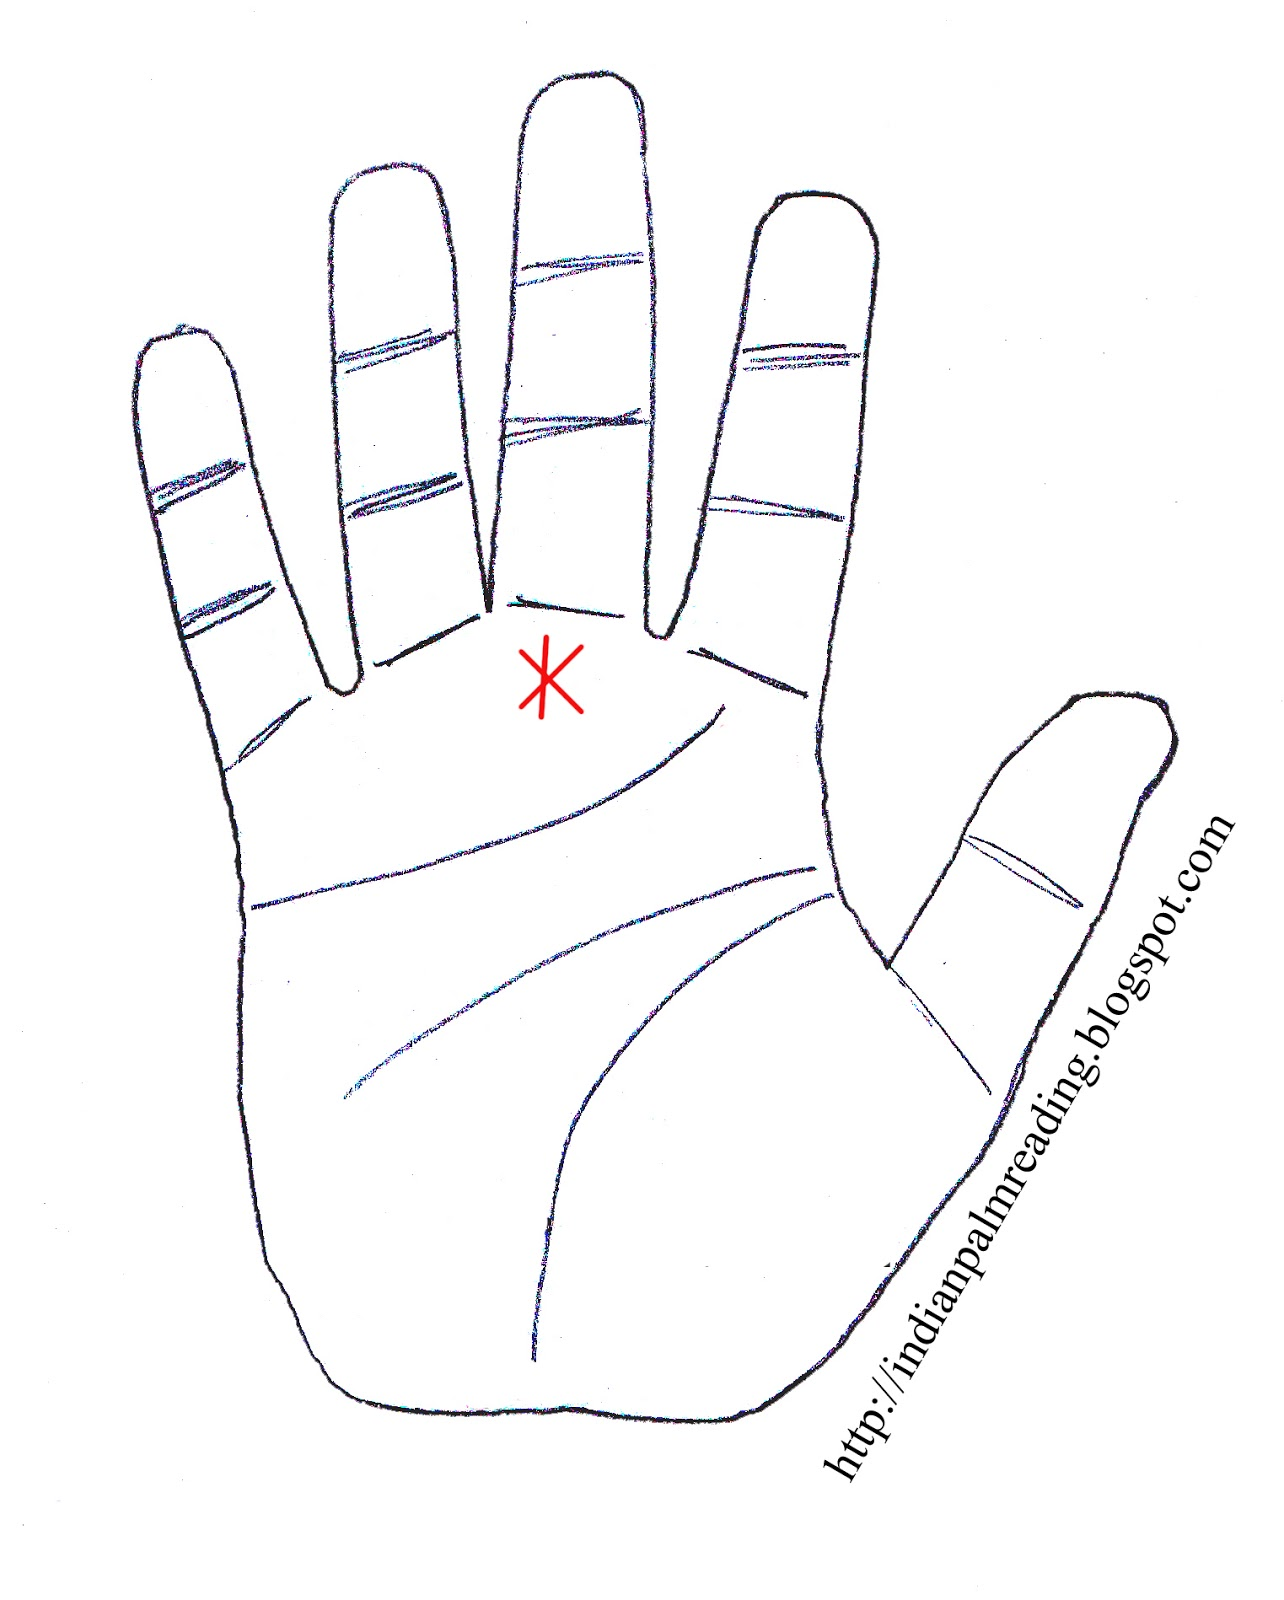 Star Mark Or Star Sign On Mount Of Saturn In Palmistry